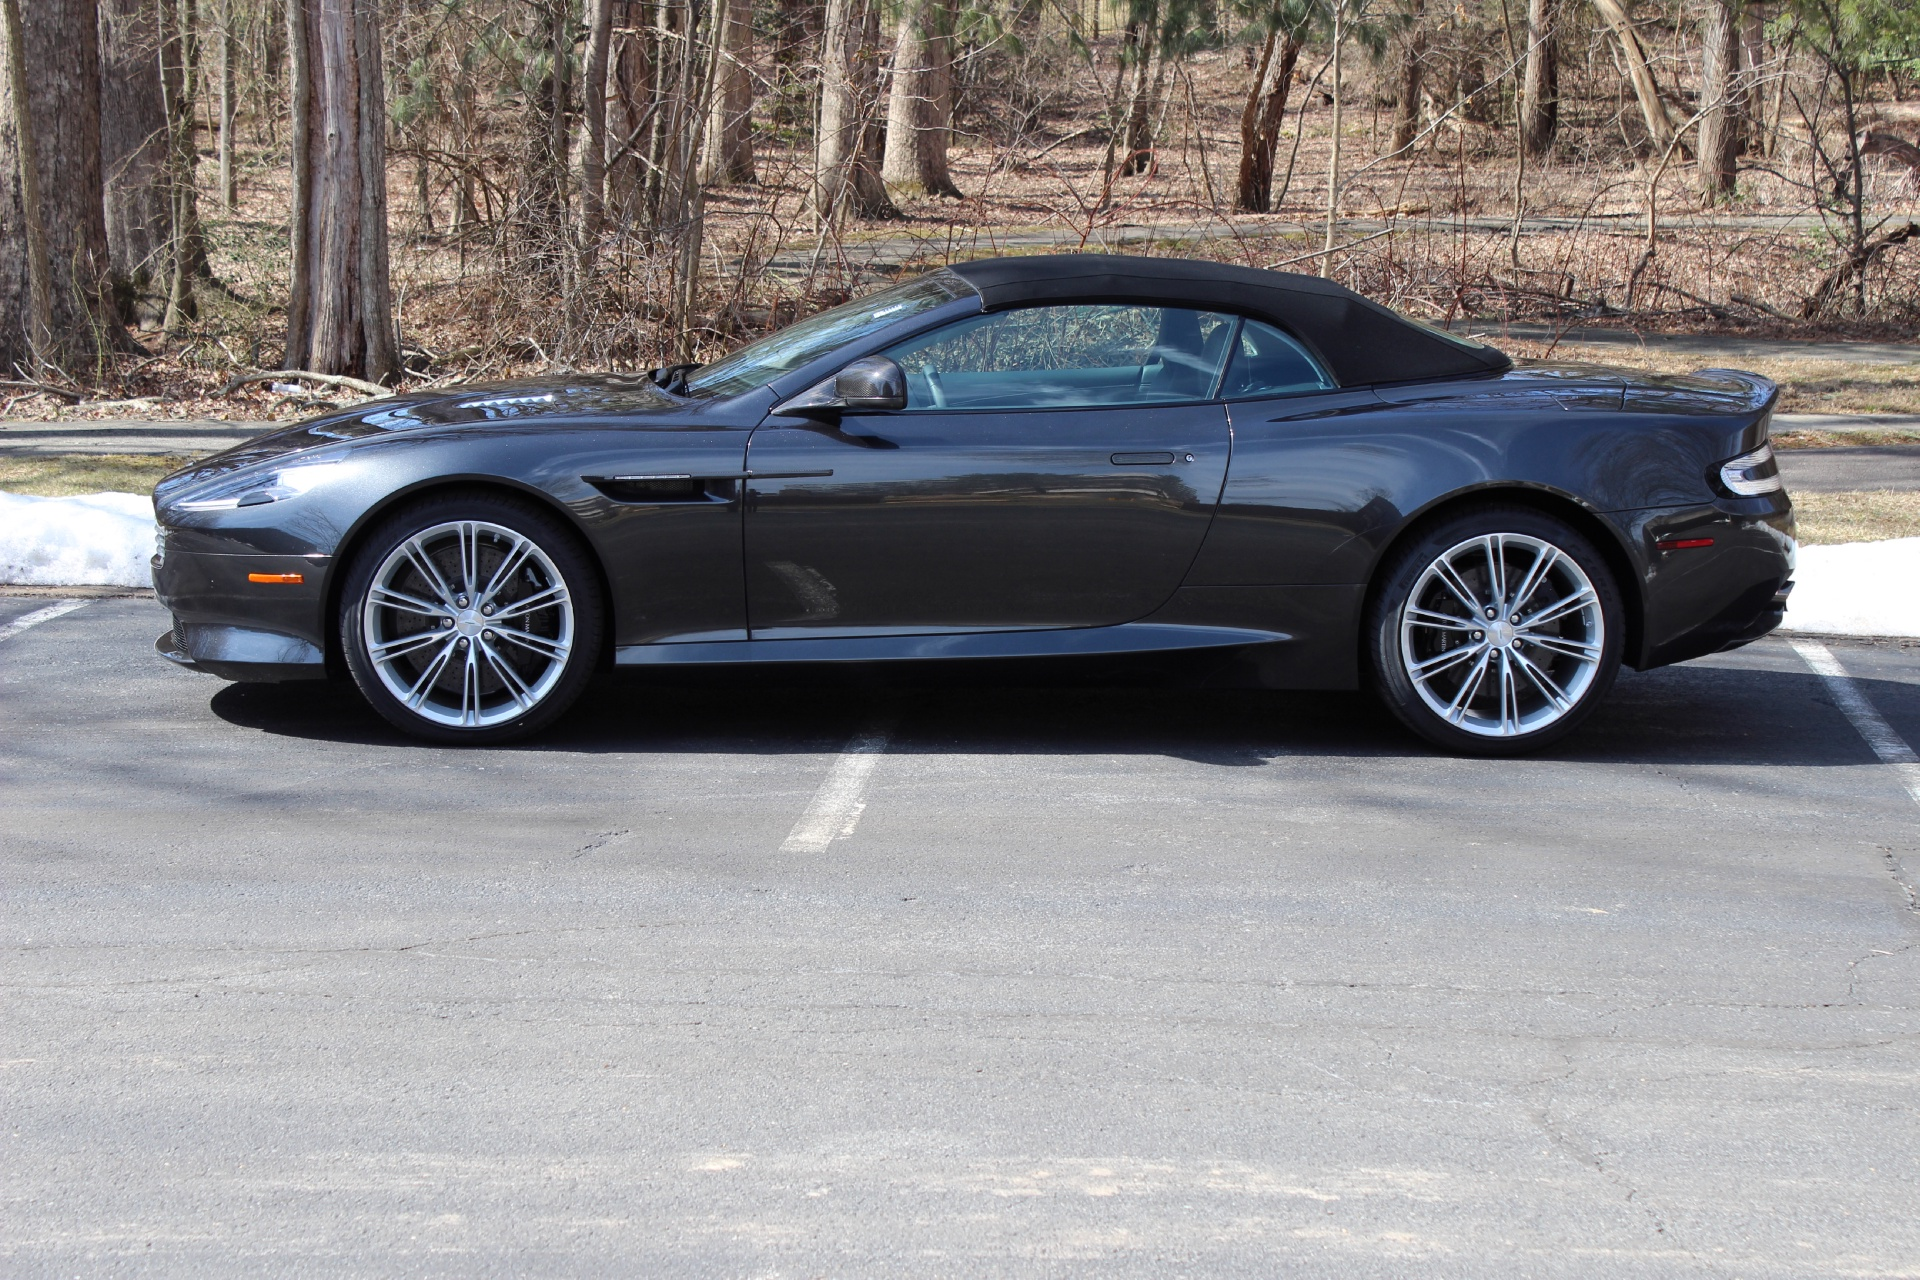 2015 aston martin db9 volante volante stock 5nb16516 for sale near vienna va va aston. Black Bedroom Furniture Sets. Home Design Ideas